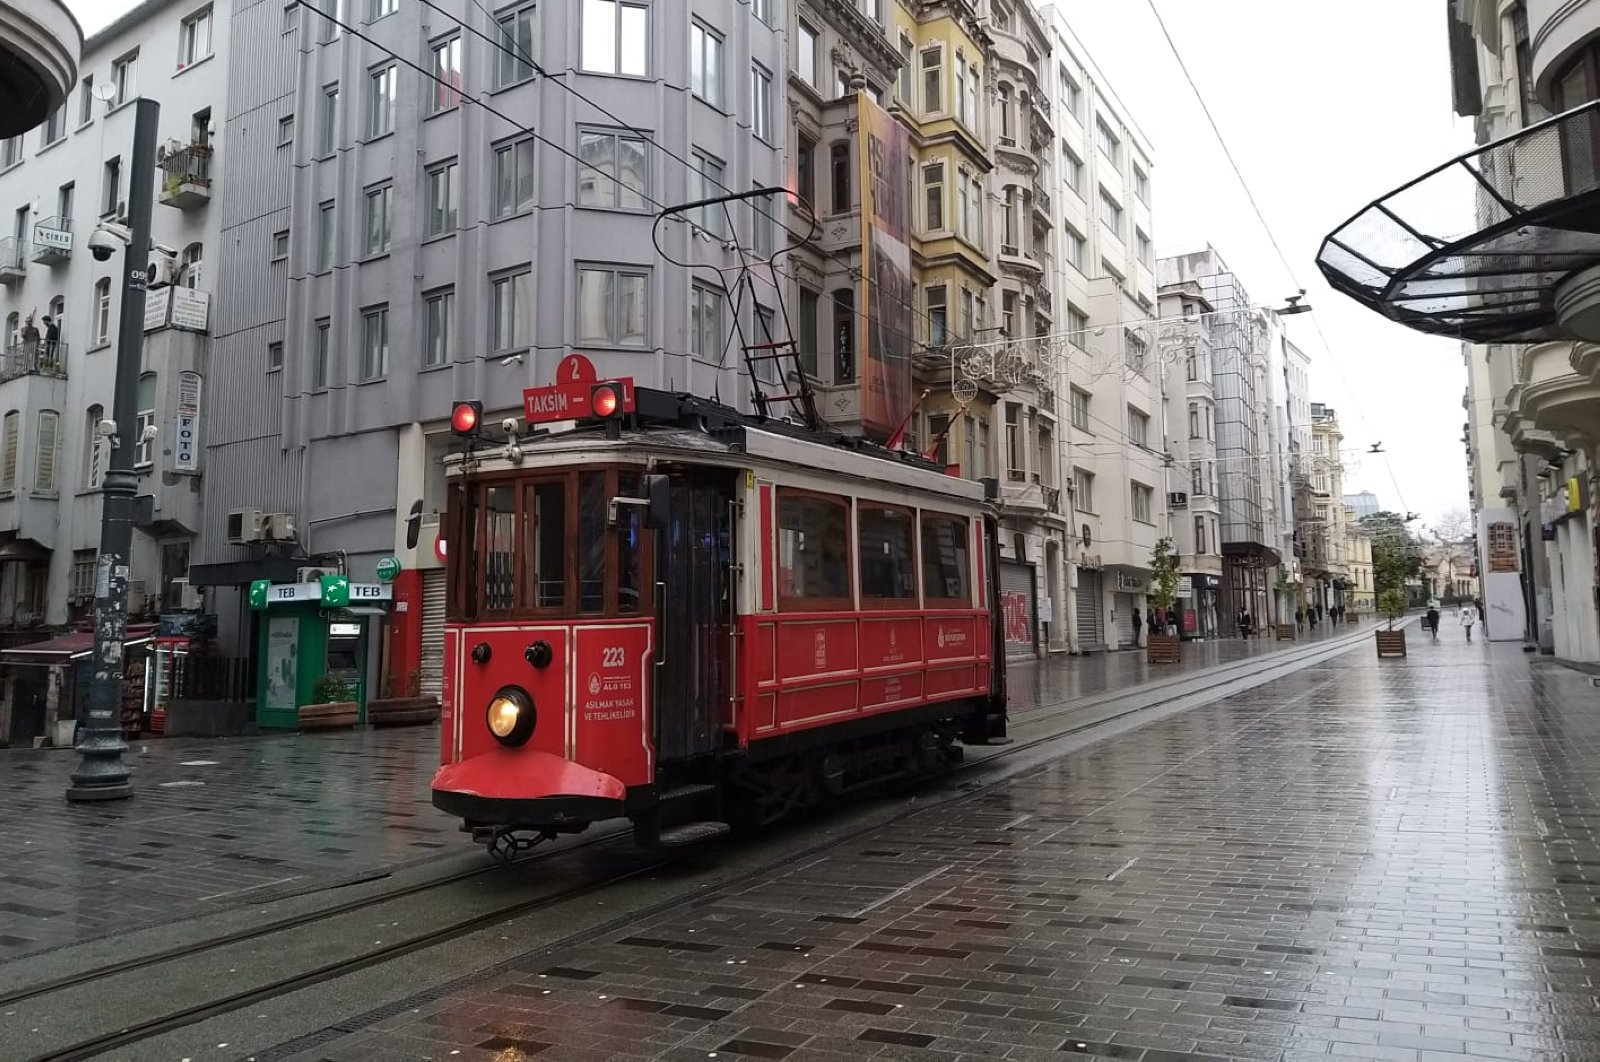 Nostalgic tram in Istanbul's historic İstiklal Avenue, which became empty after curfew, on April 11, 2020.